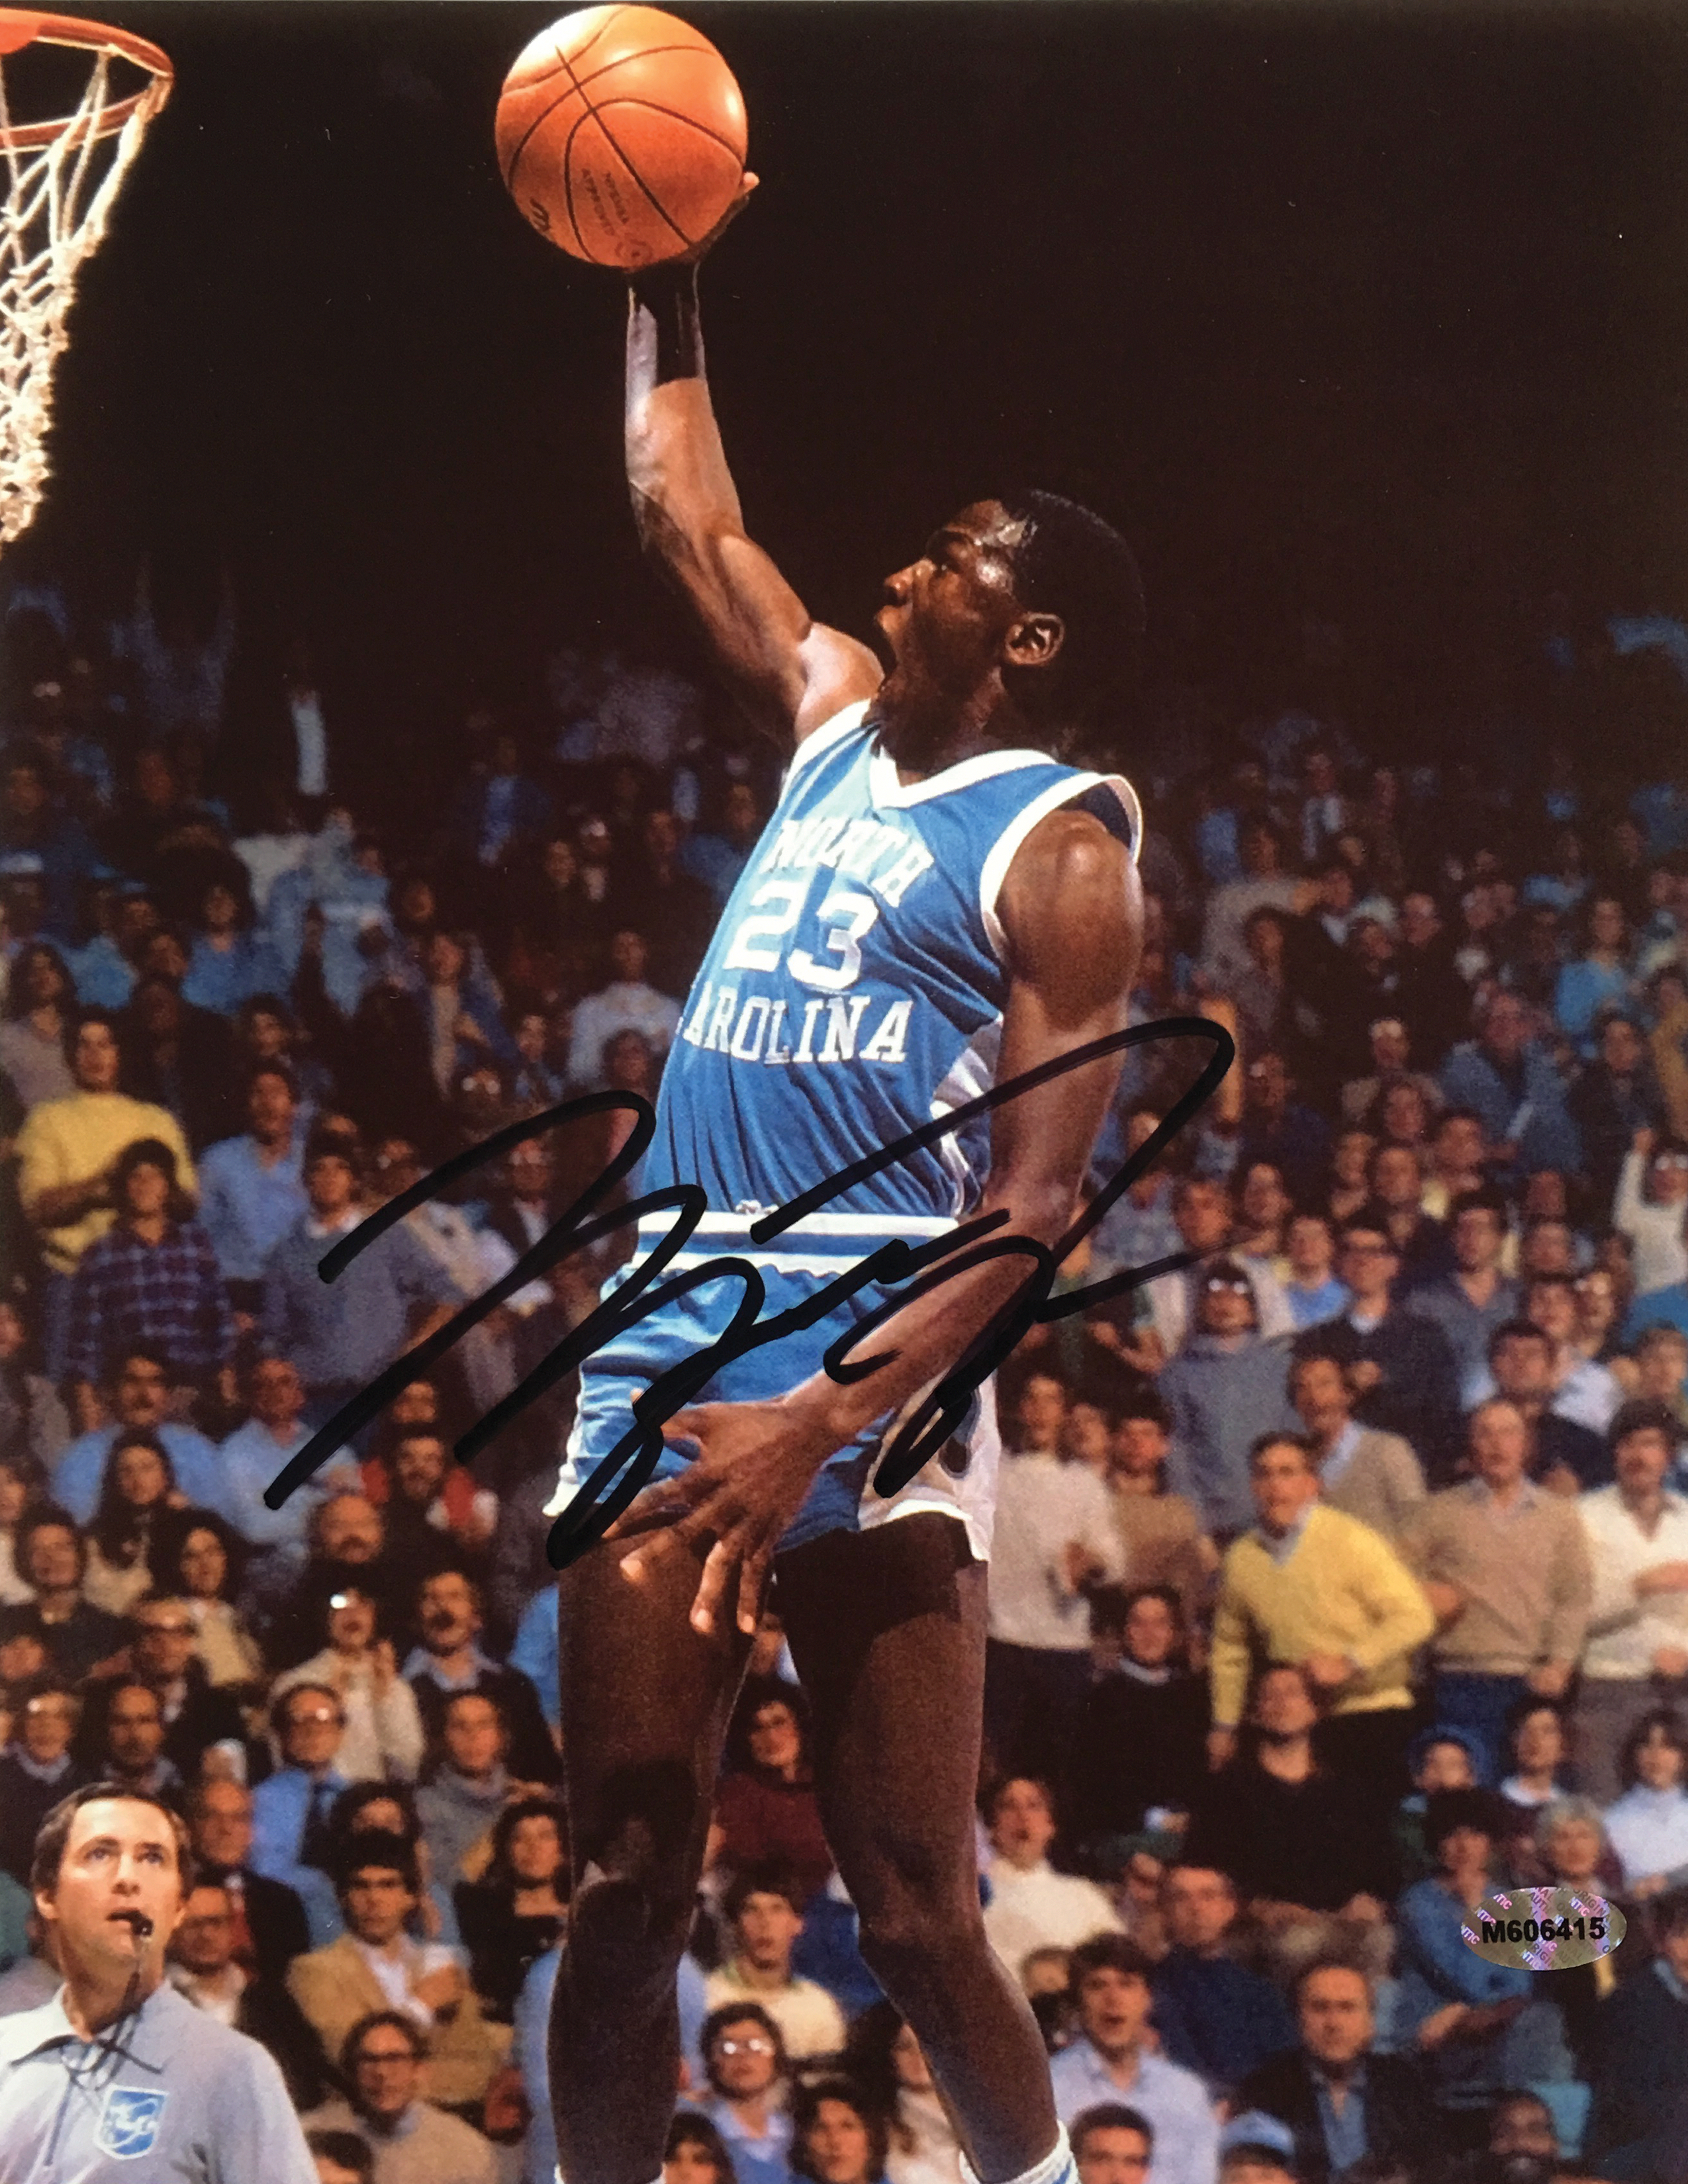 Rare Hand Signed 8x10 Photo Featuring The Autograph Of The Legend Michael Jordan During His Tenure Team Usa Basketball Basketball History Fantasy Basketball